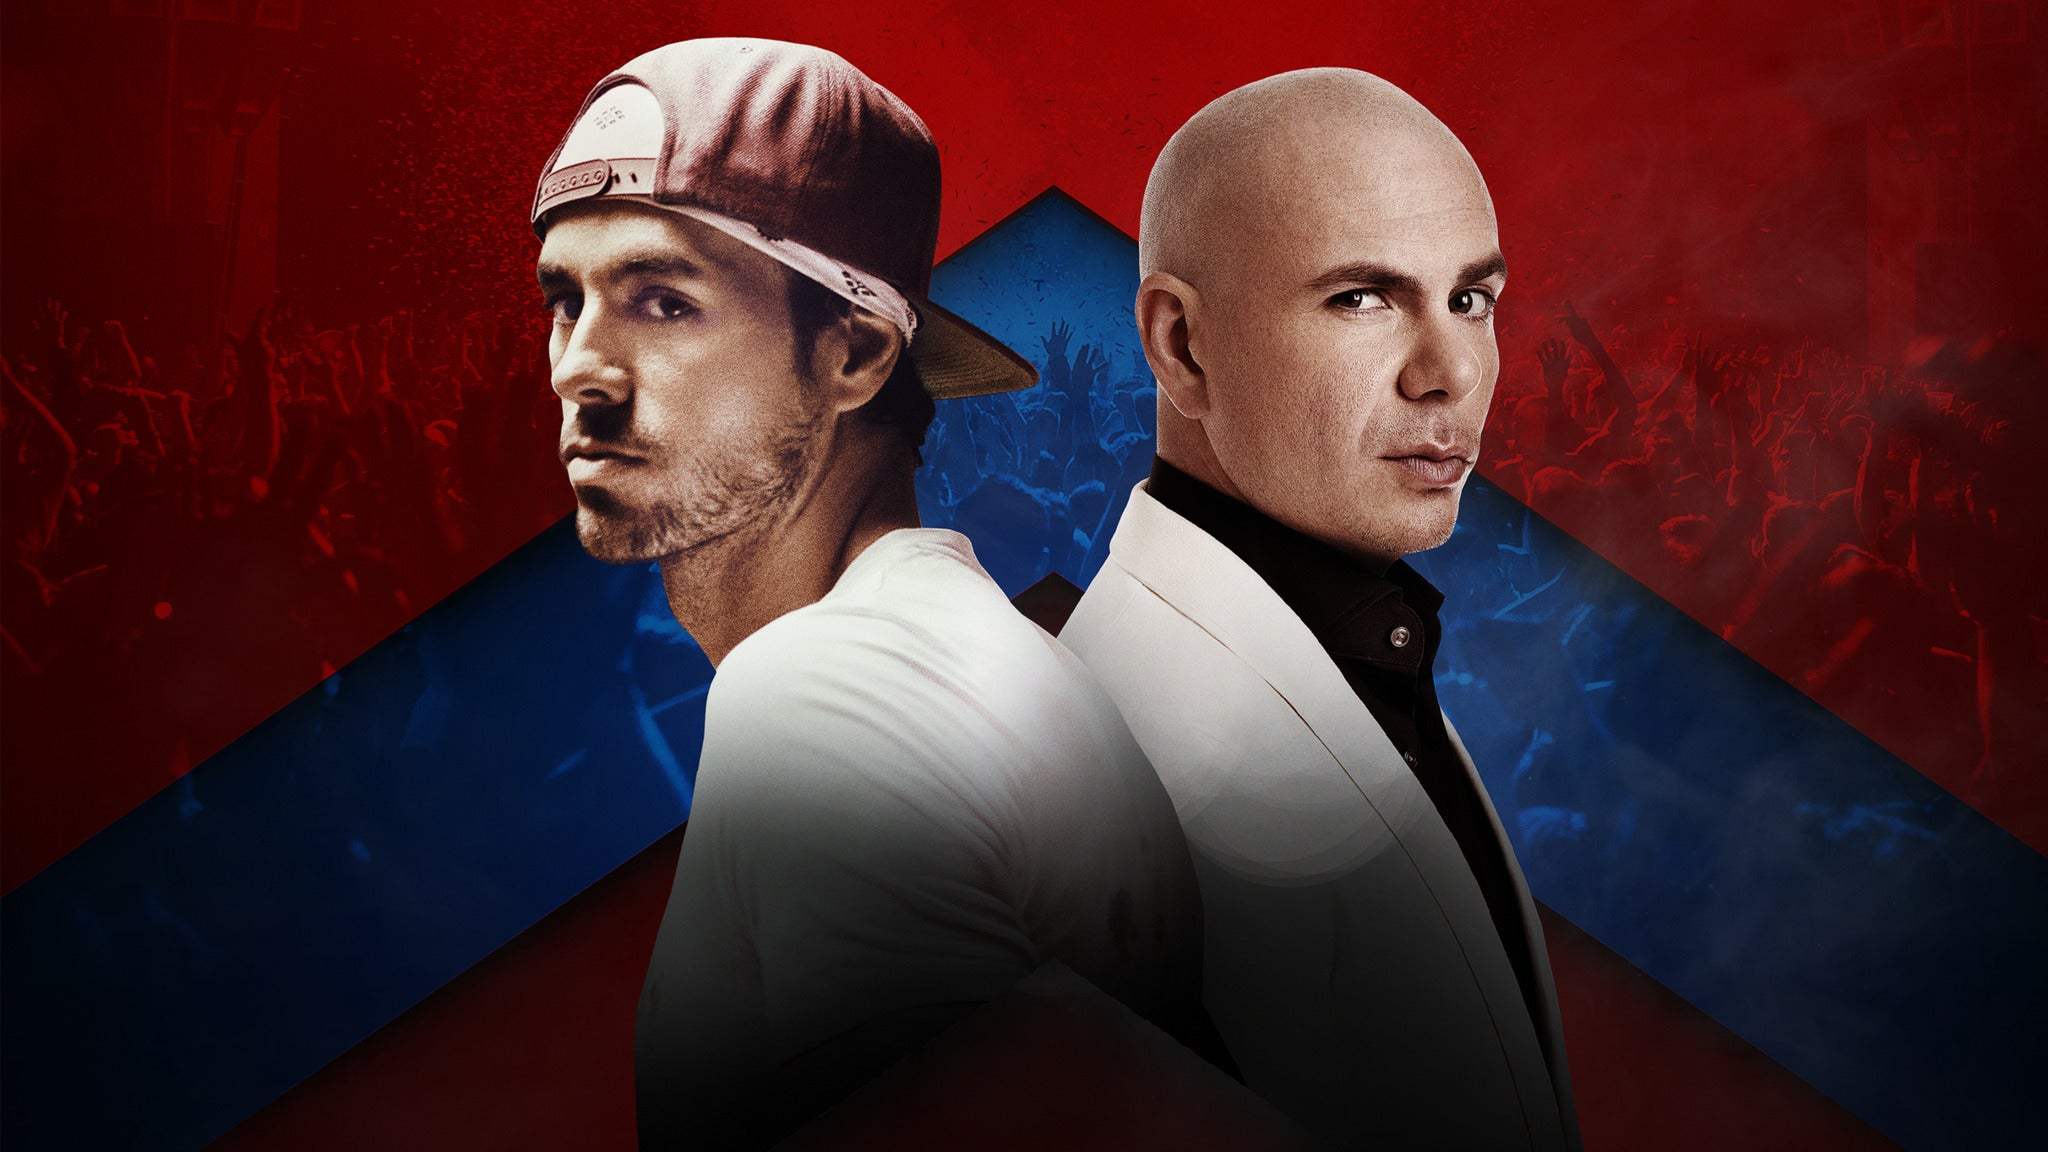 Enrique Iglesias & Pitbull at AmericanAirlines Arena